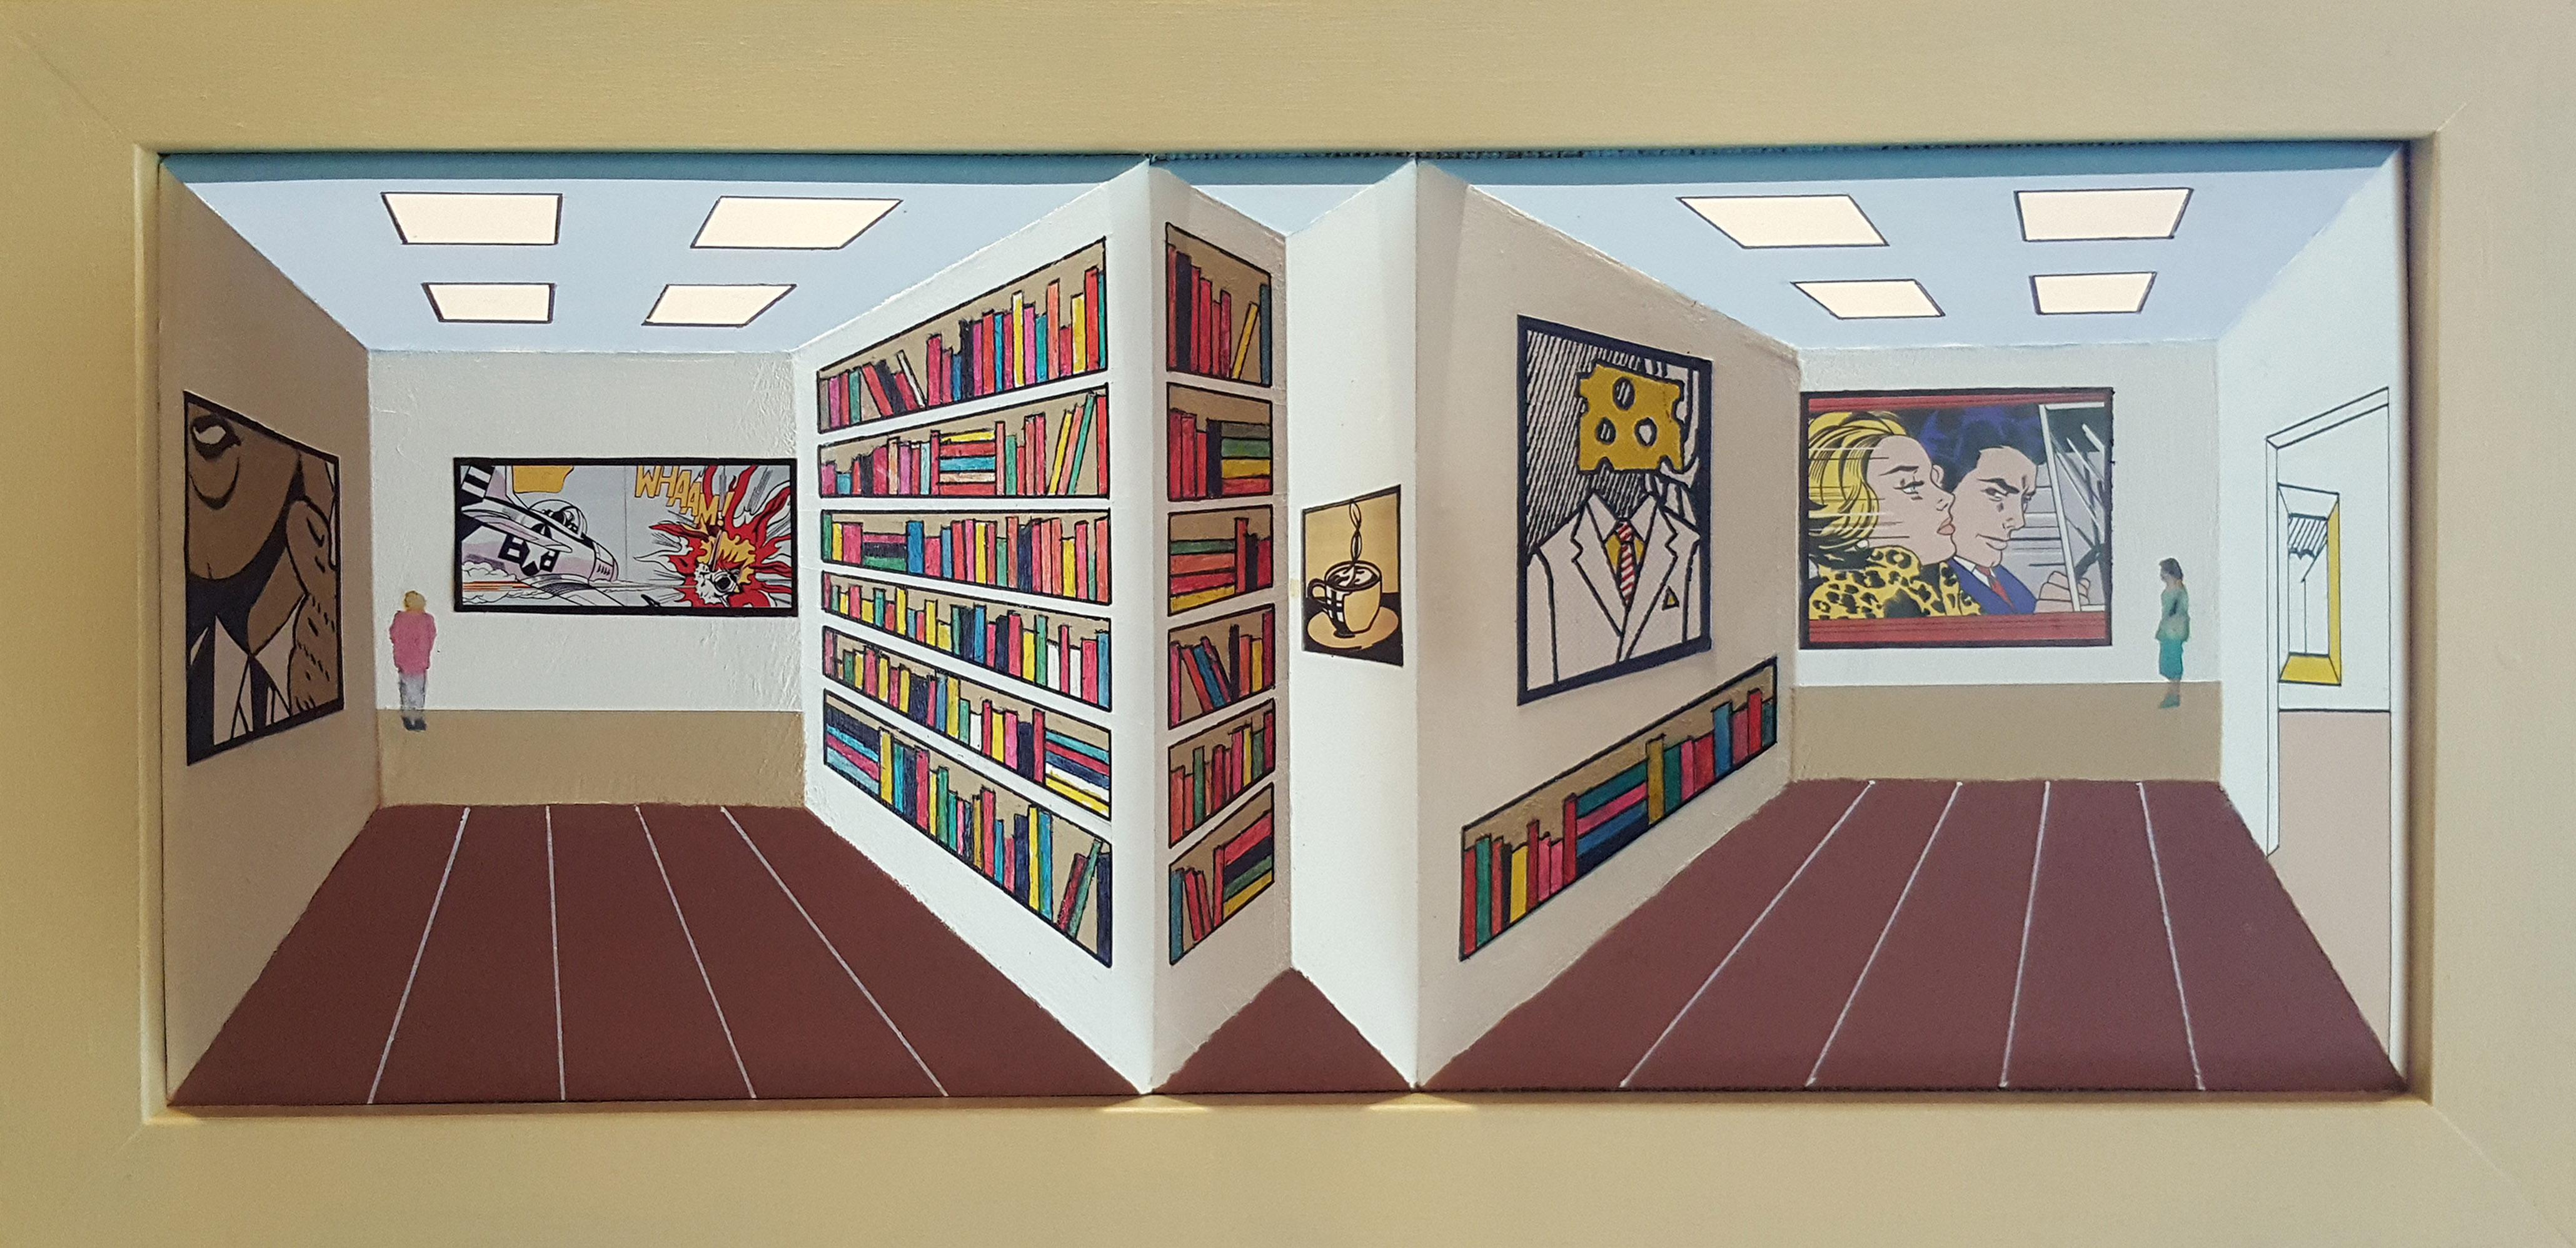 Roy's Gallery/ Library